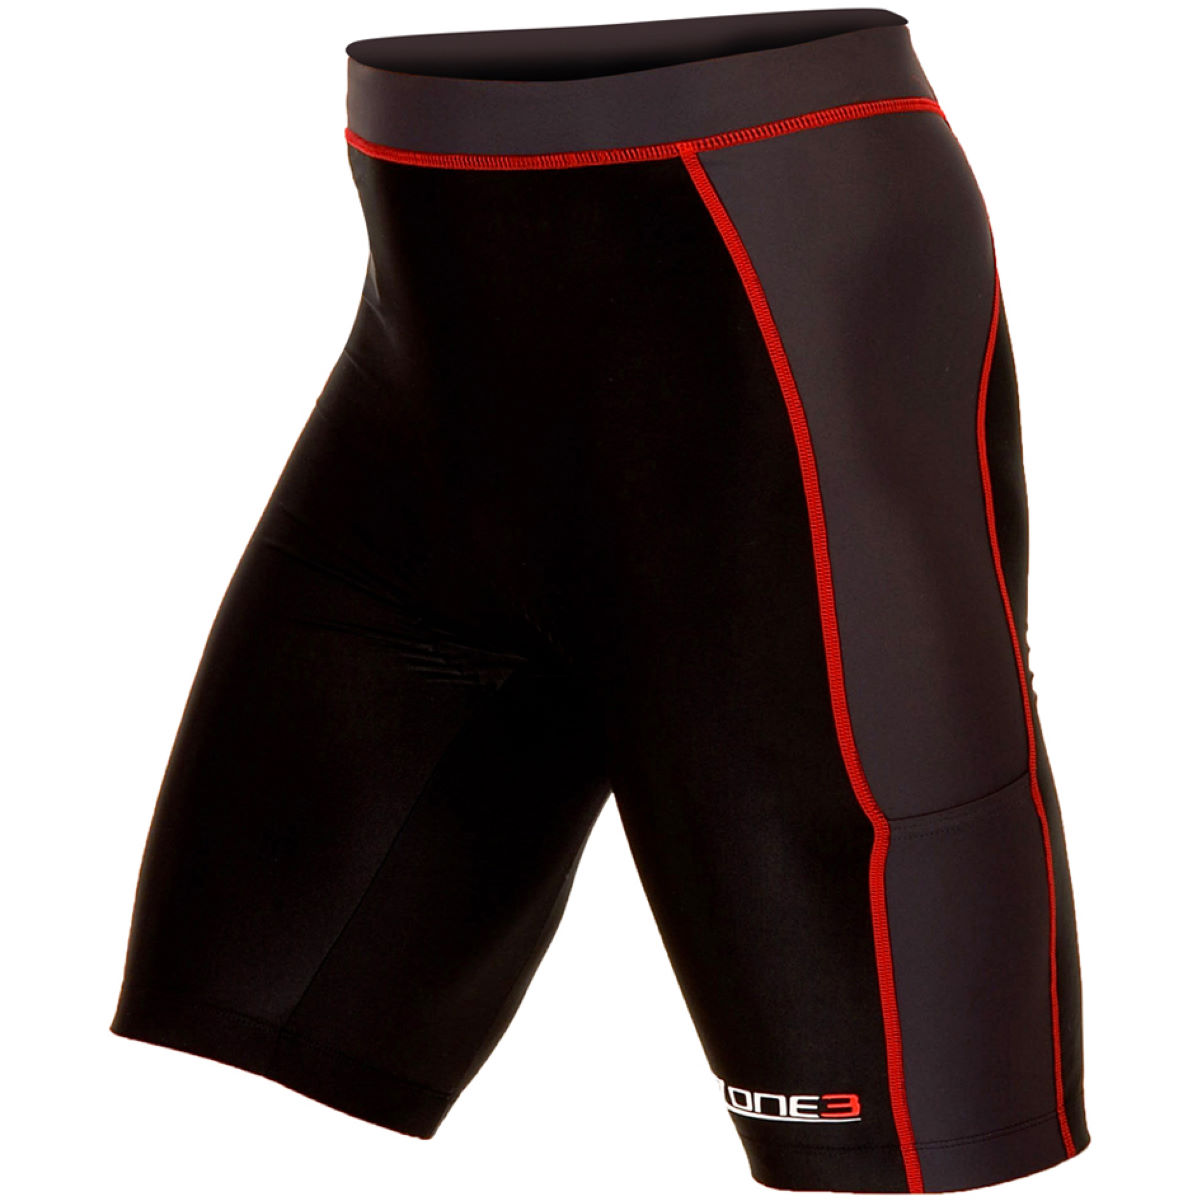 Cuissard Zone3 Lava Tri - XL Black/Grey/Red Cuissards de triathlon